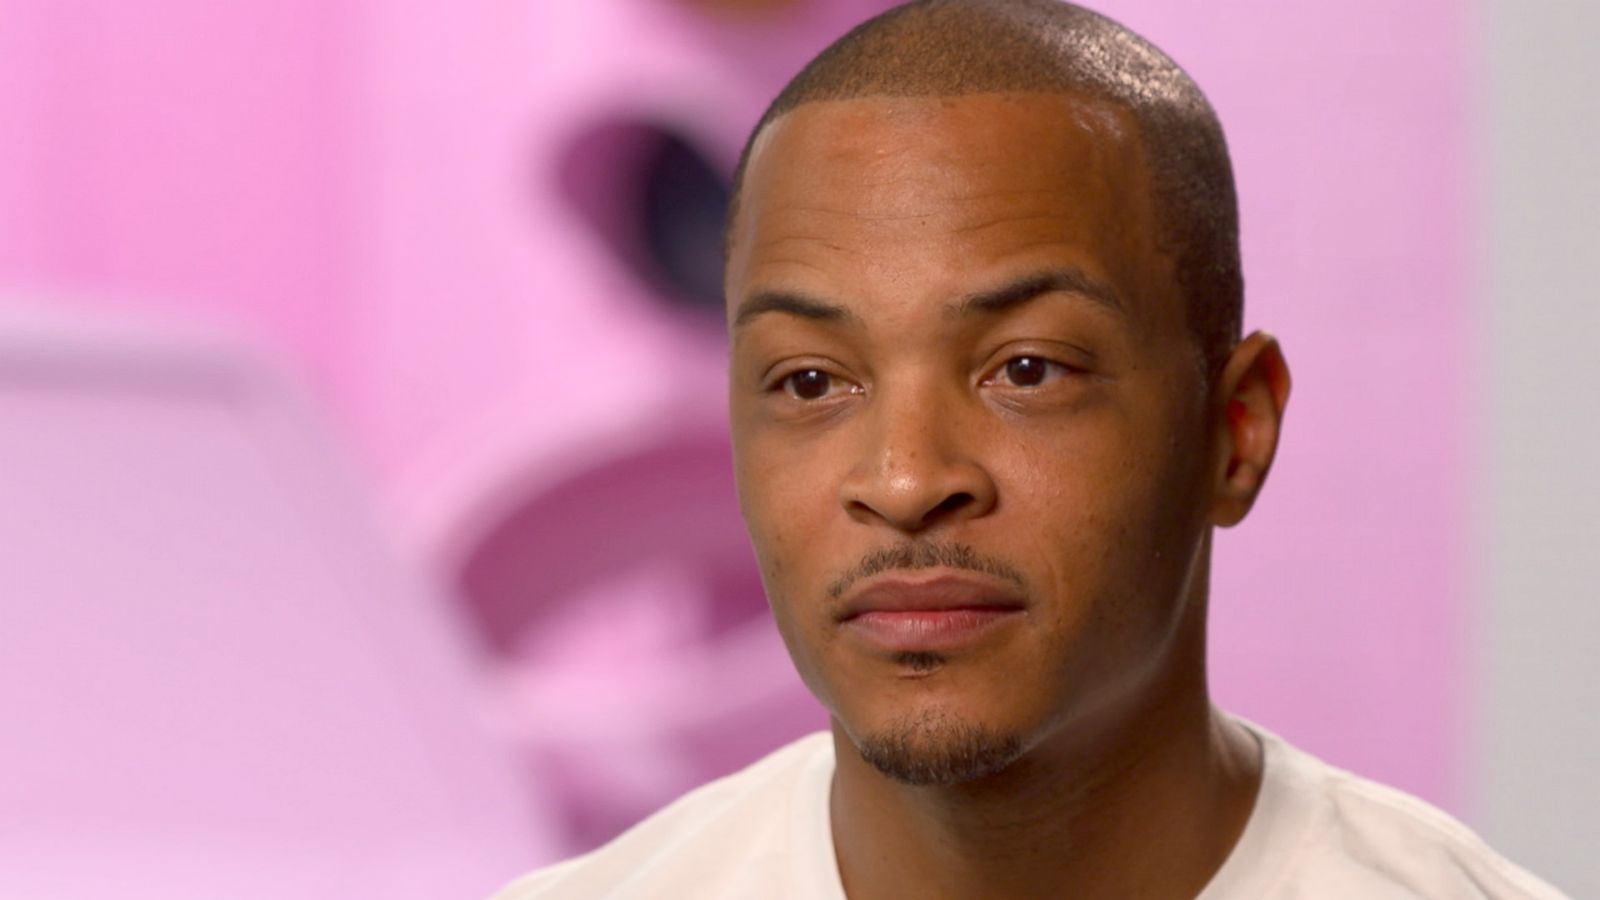 T.I. Drops Important Advice For Fans – See His Video